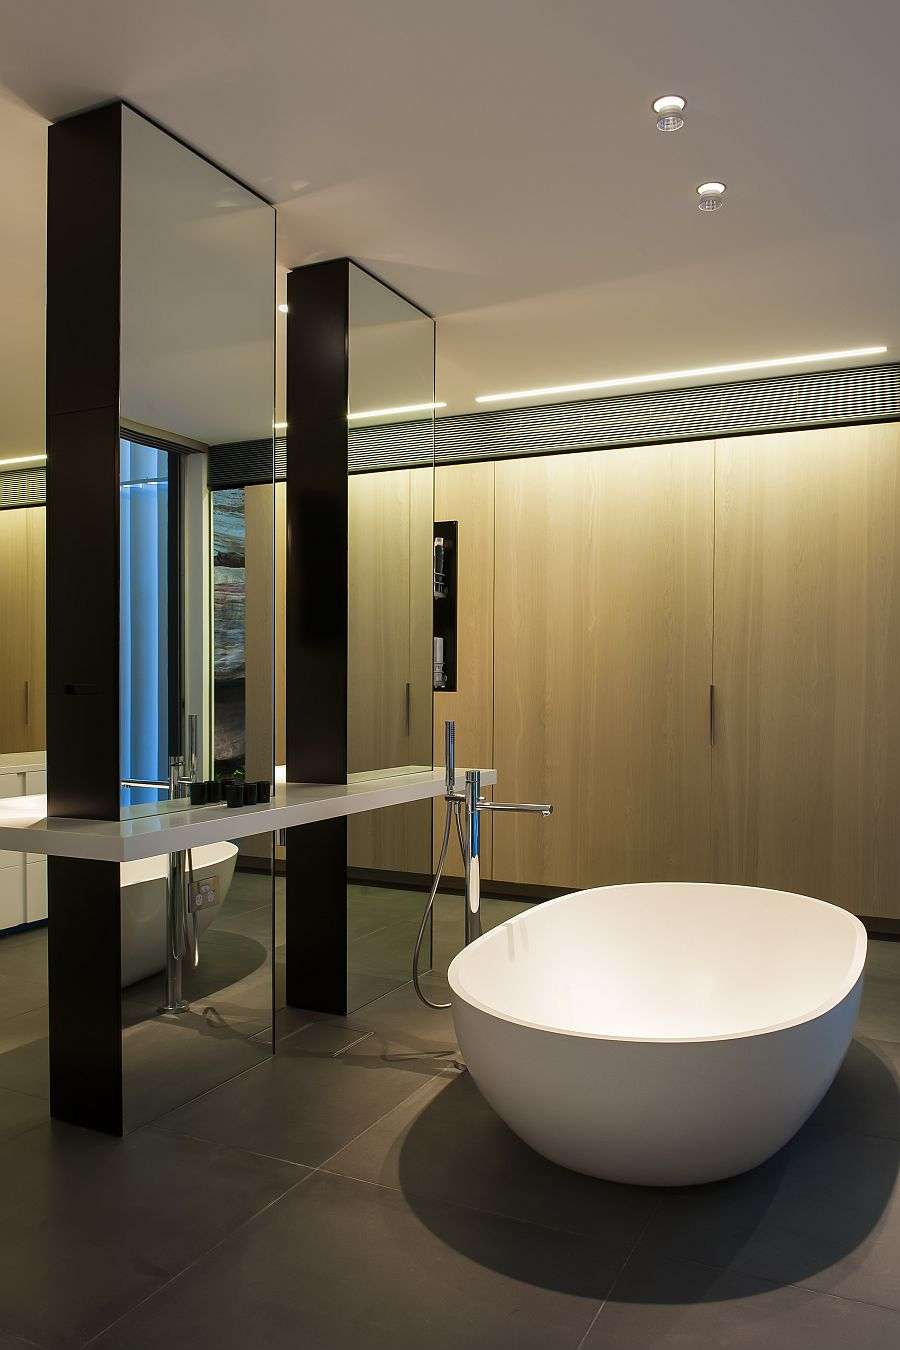 View of the Bath space in the Sydney home